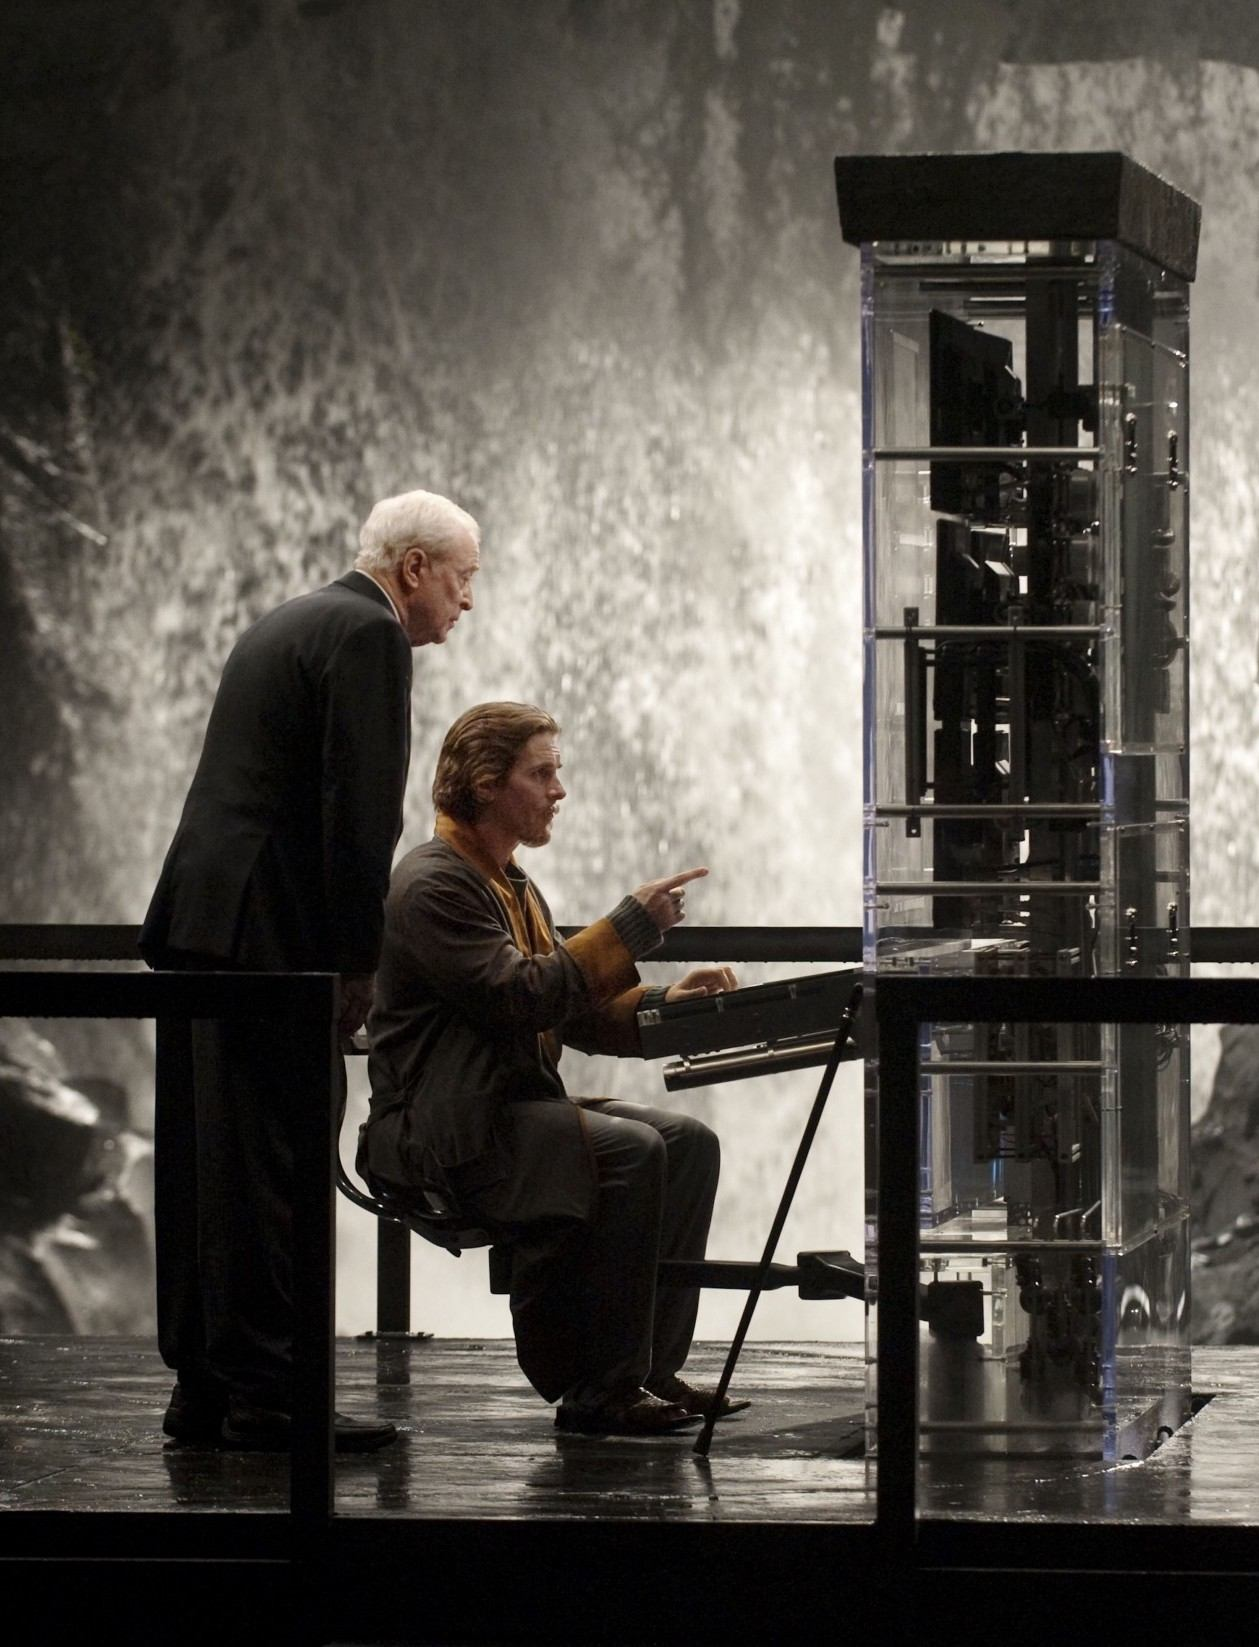 1 iBOSiH6mncY4kPn15MVgkg 25 Things You Didn't Know About The Dark Knight Rises